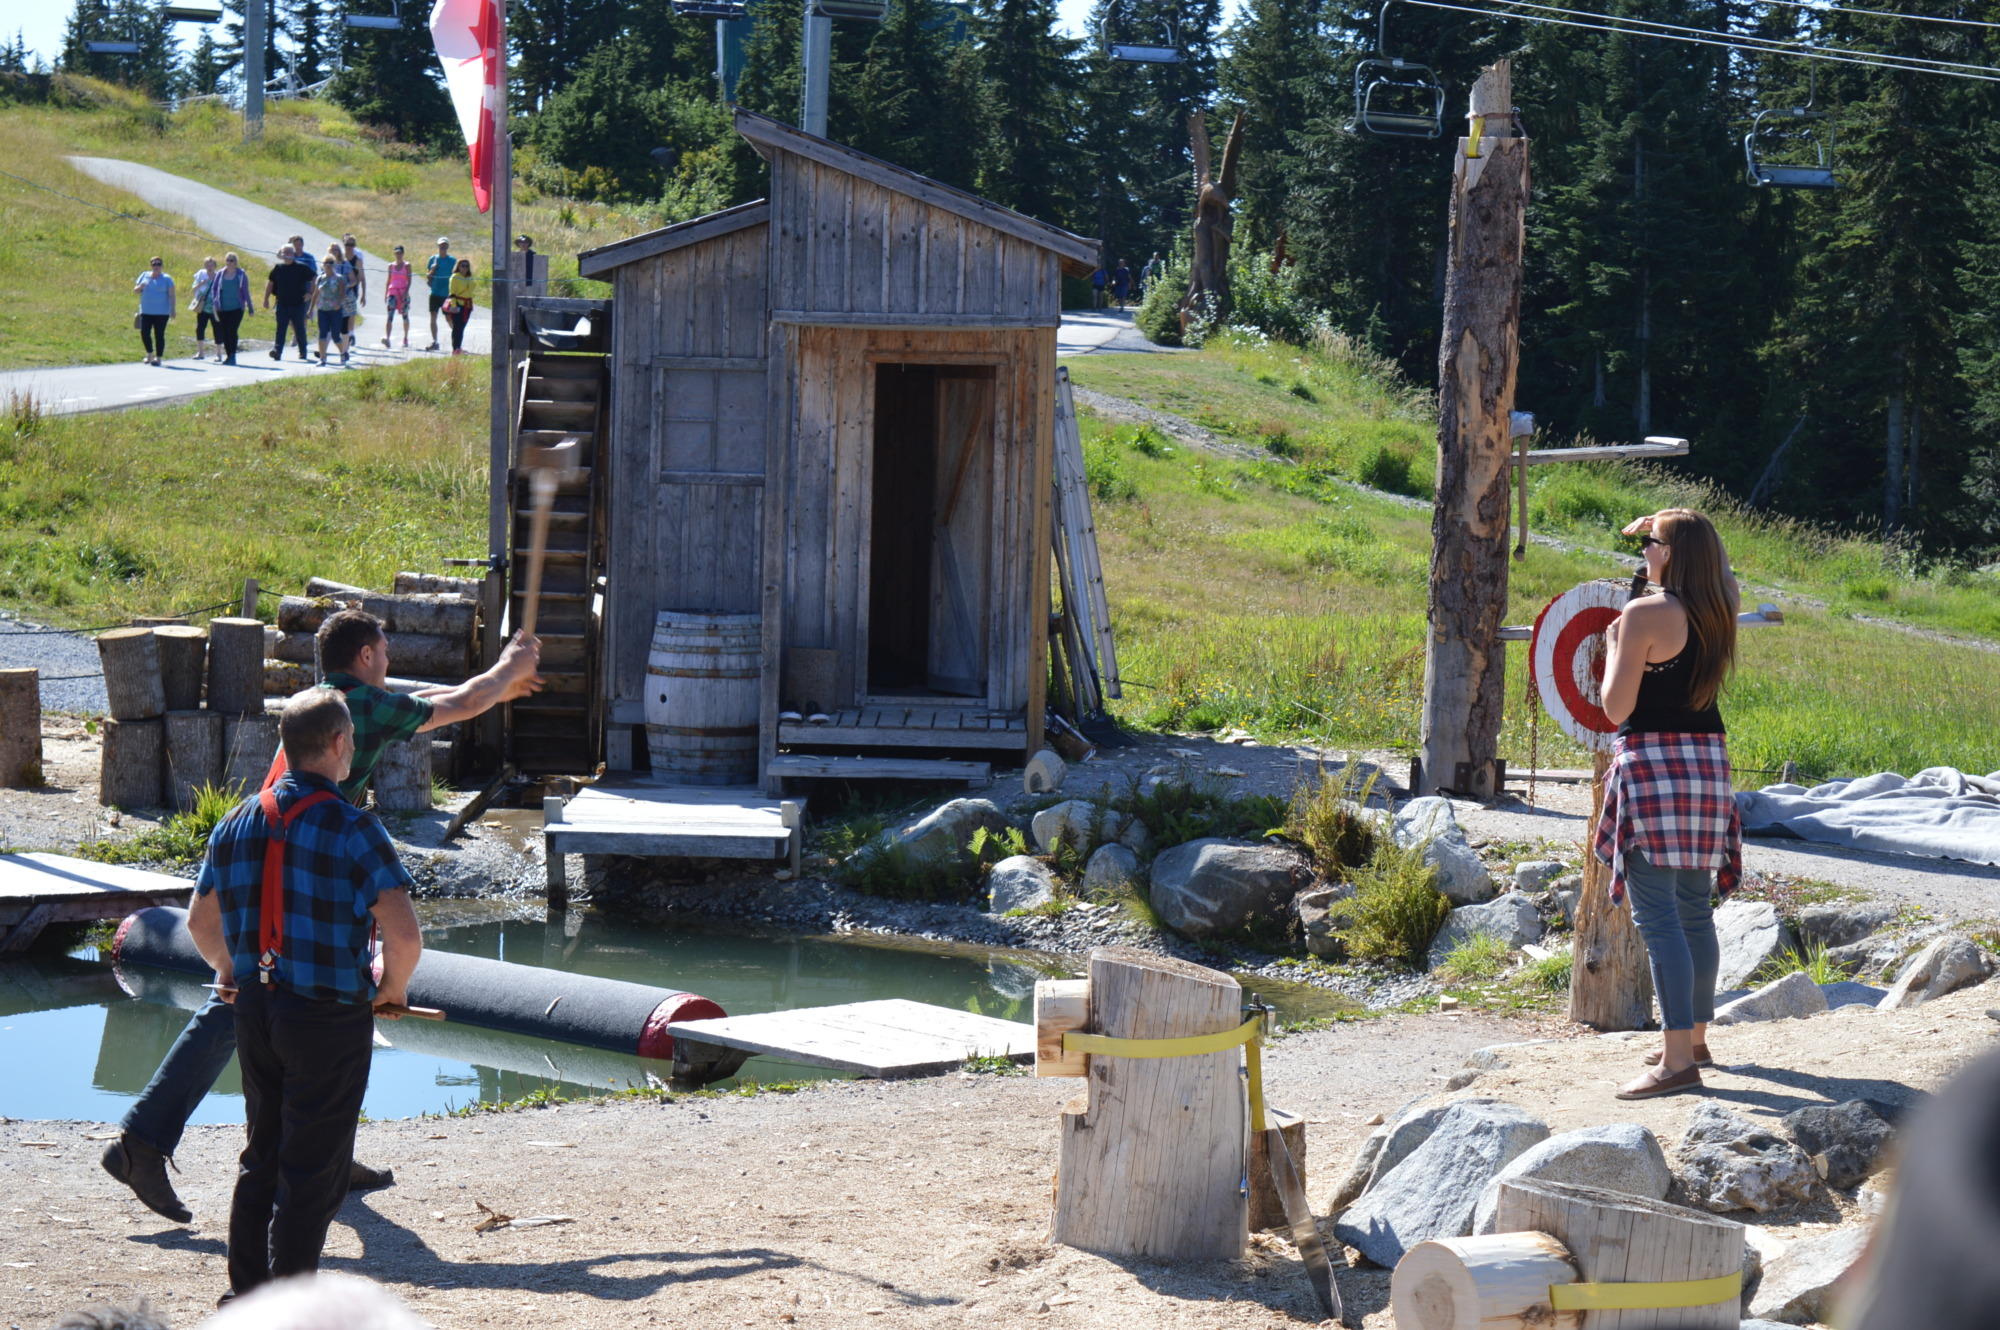 Grouse Mountain lumberjack show axe throwing